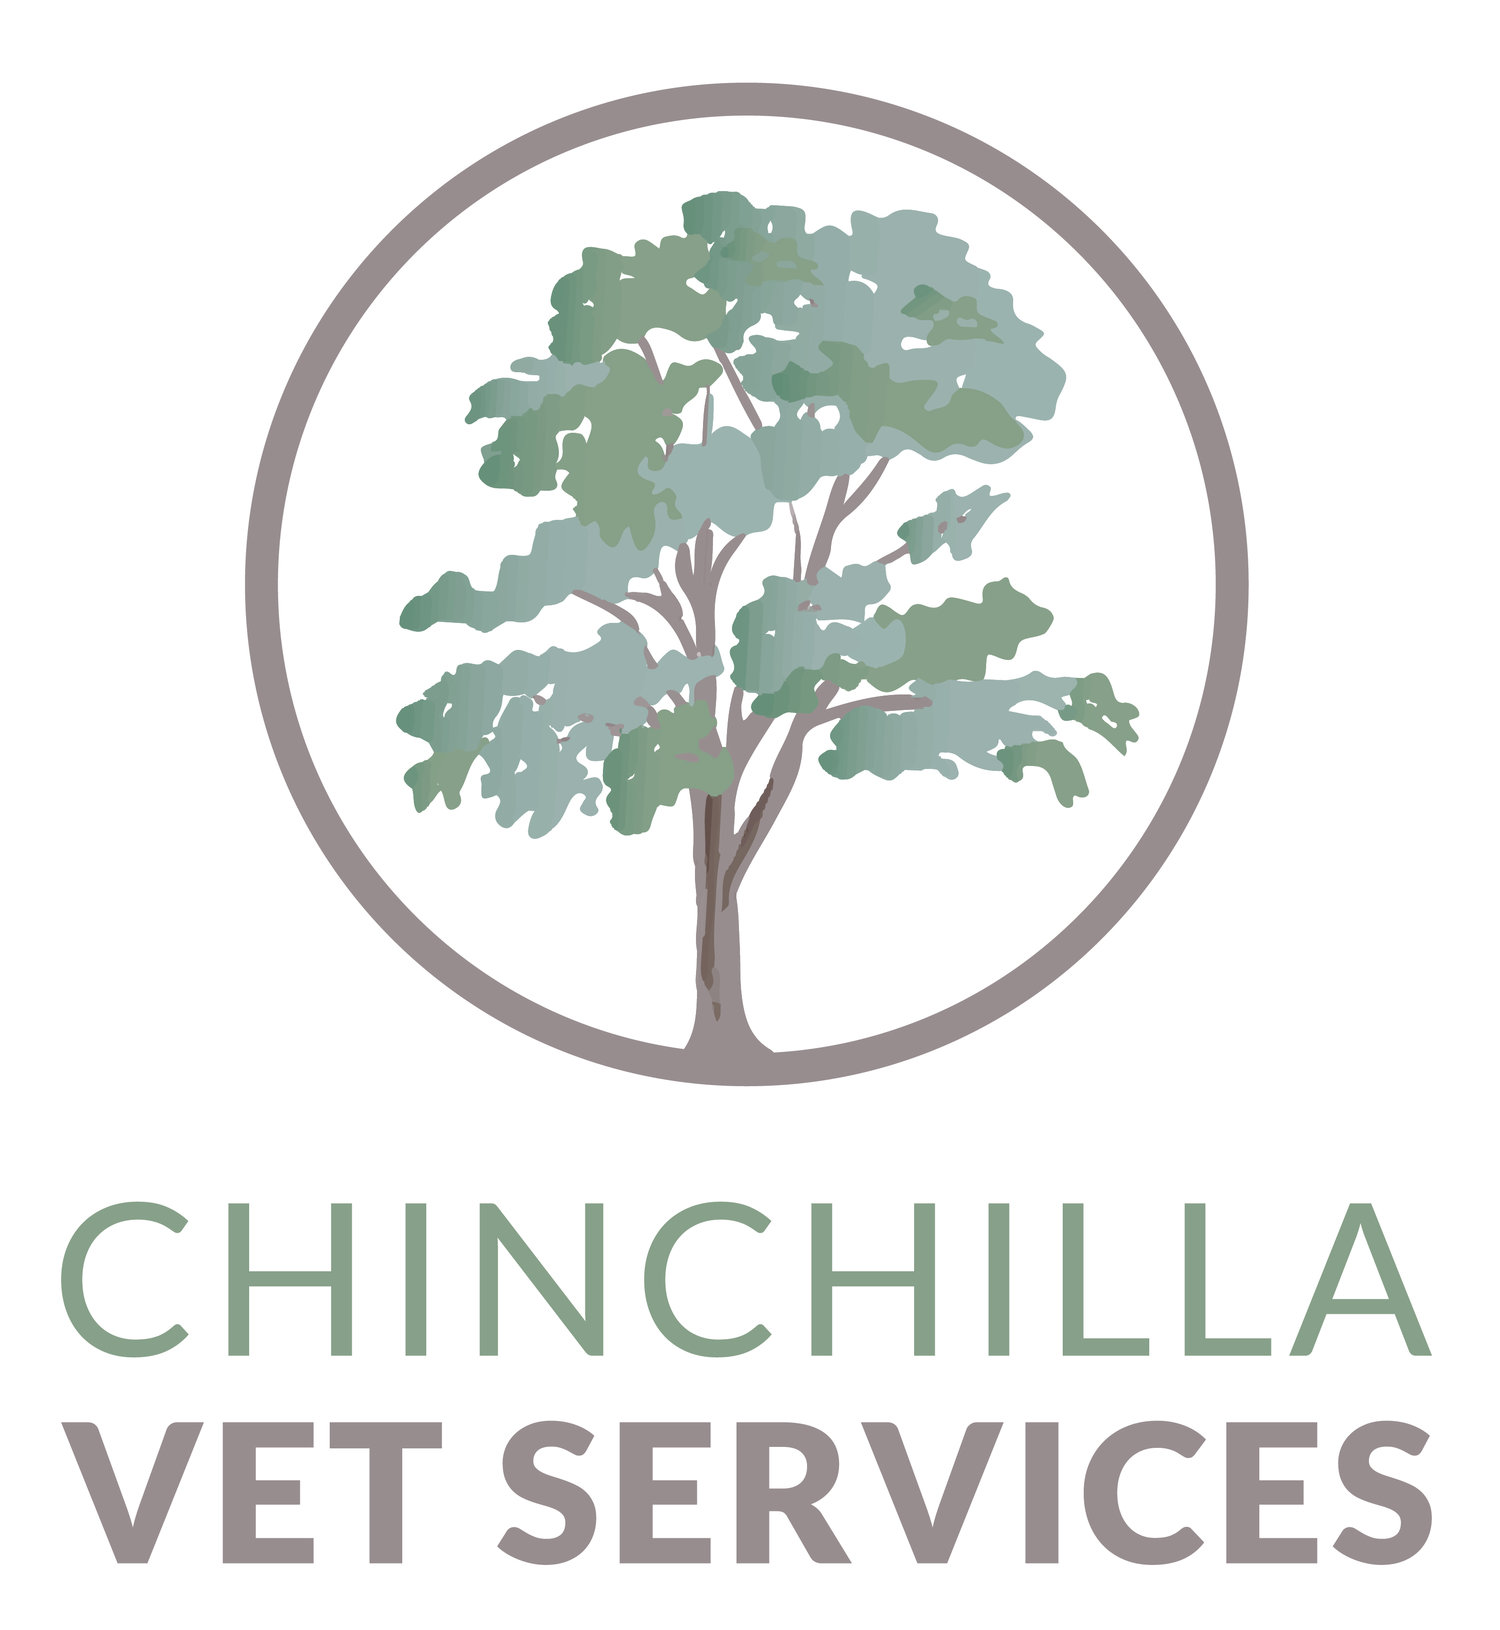 Chinchilla Vet Services